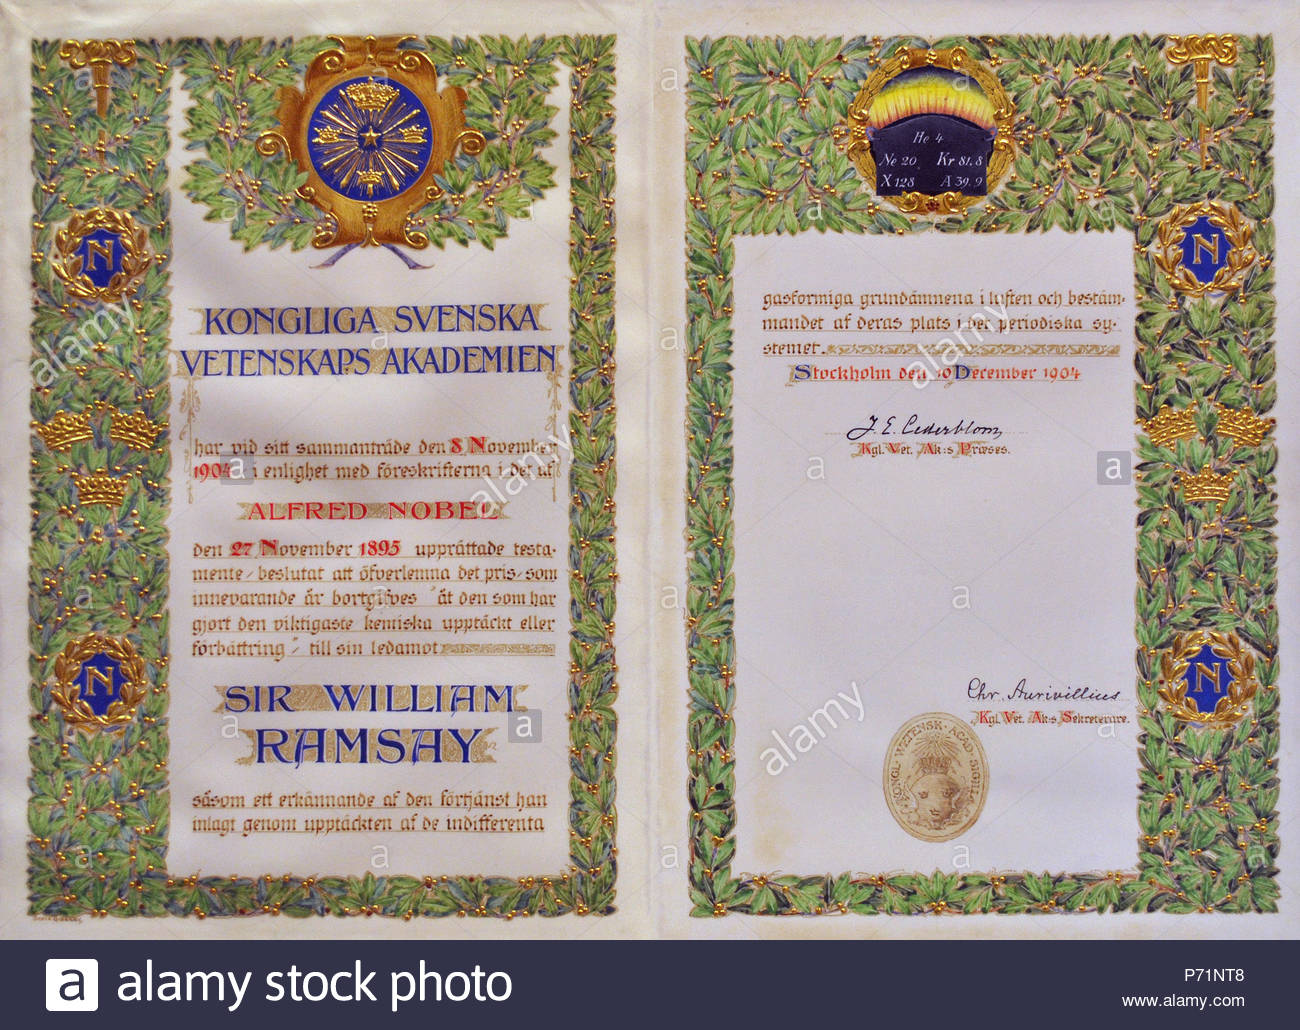 the certificate was produced by artist sofia gisberg according to the nobel foundation website httpwwwnobelprizeorgnobel